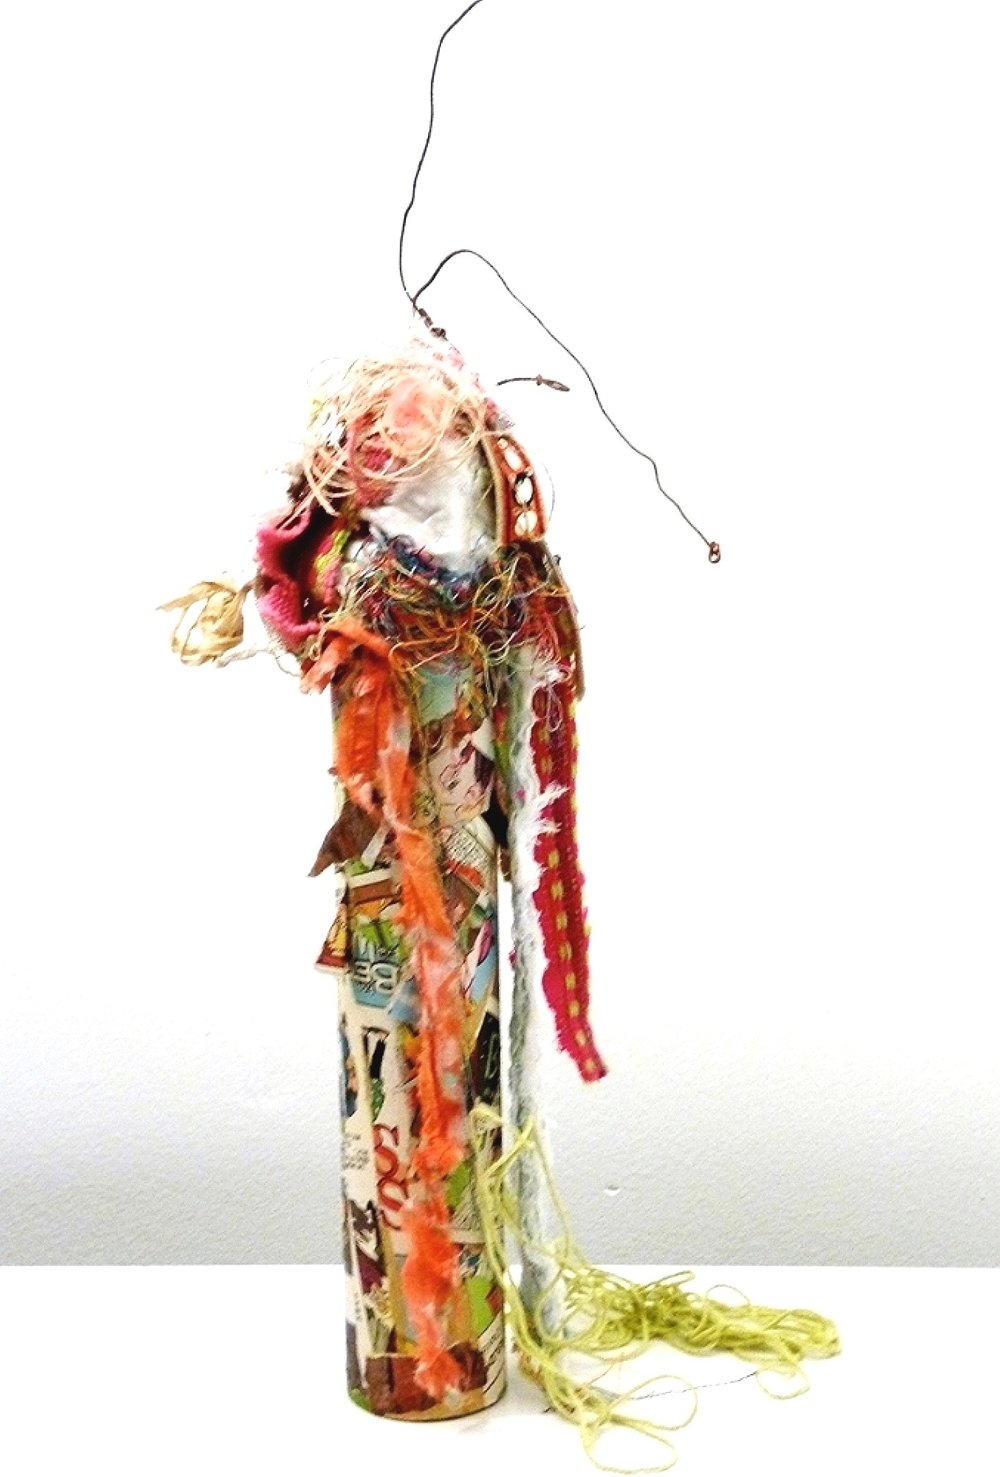 Oracle.  Rust, textile, comics, thread, mirror, colored twine on industrial cardboard tube. 22 x 8 in. round (55.9 x 20.3 cm.) 2015